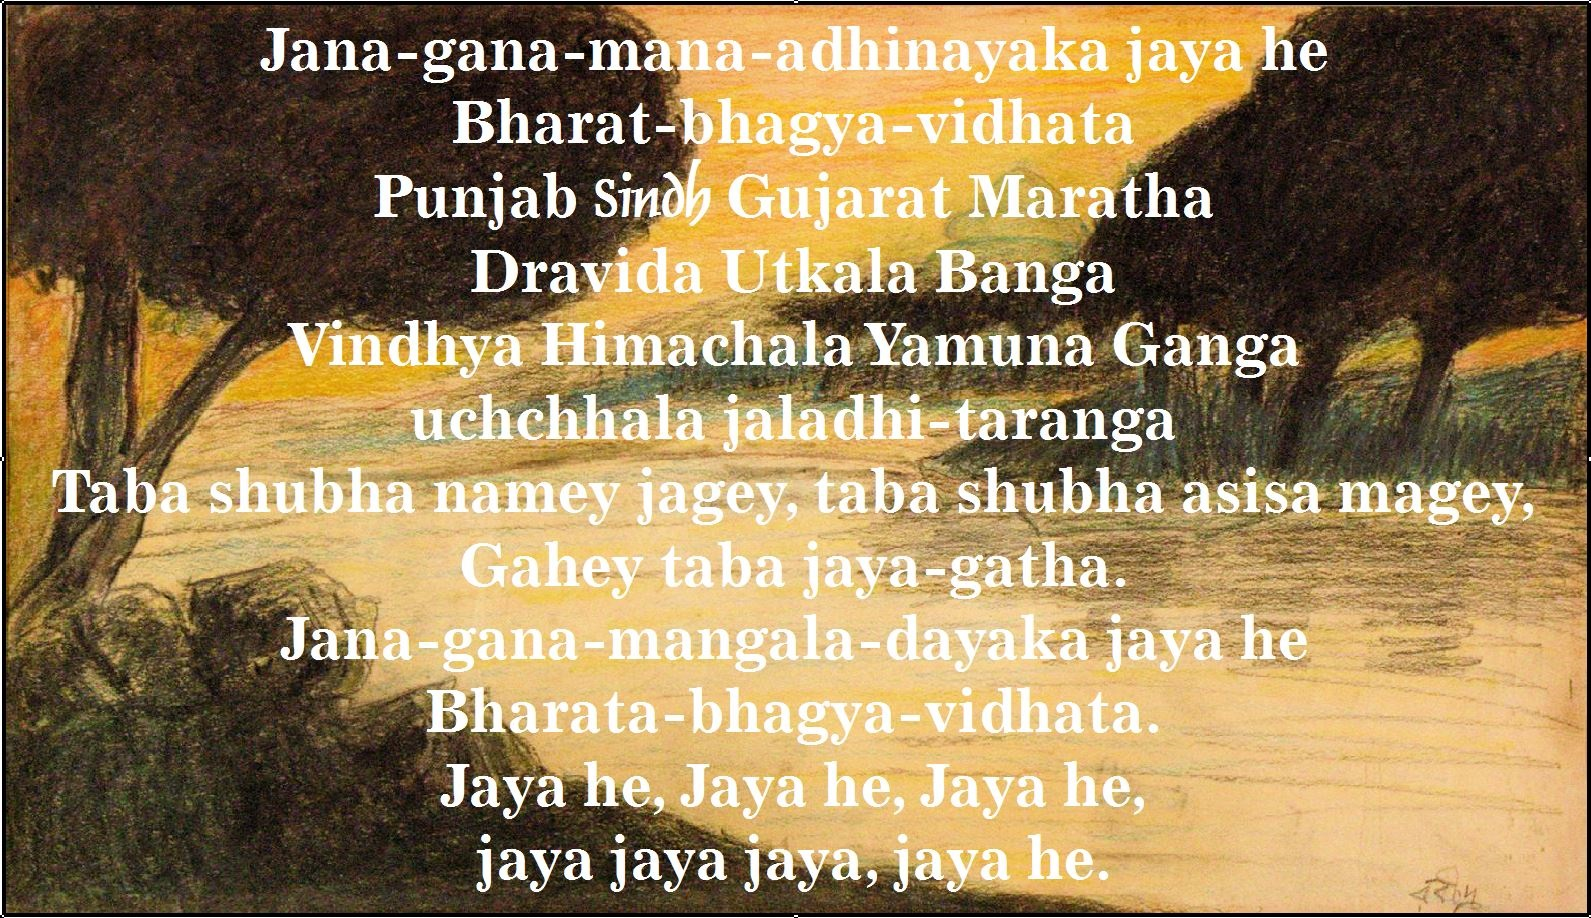 Rabindranath Tagore's great song from which has emerged our amazing national anthem lists regions, including the territory called Sindh.